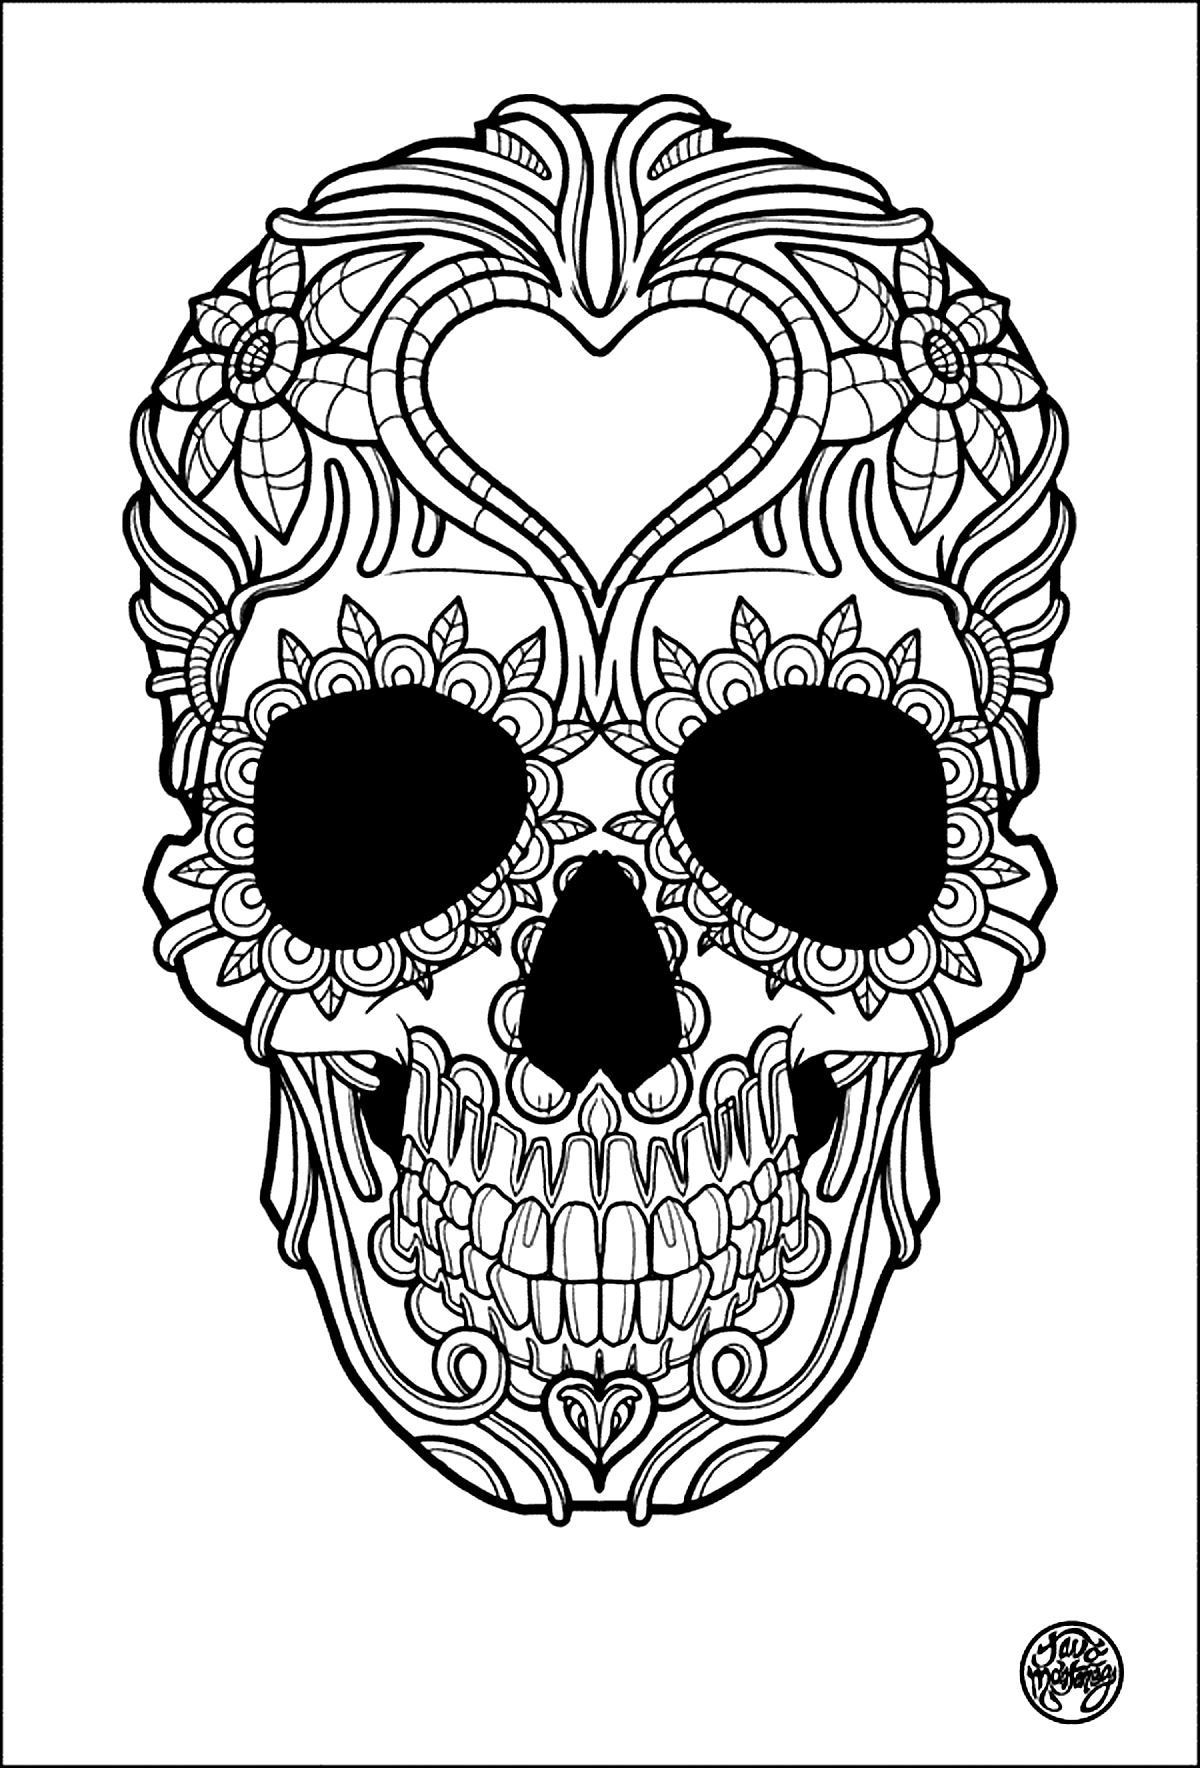 Pages to color for adults - 19 Of The Best Adult Colouring Pages Free Printables For Everyone